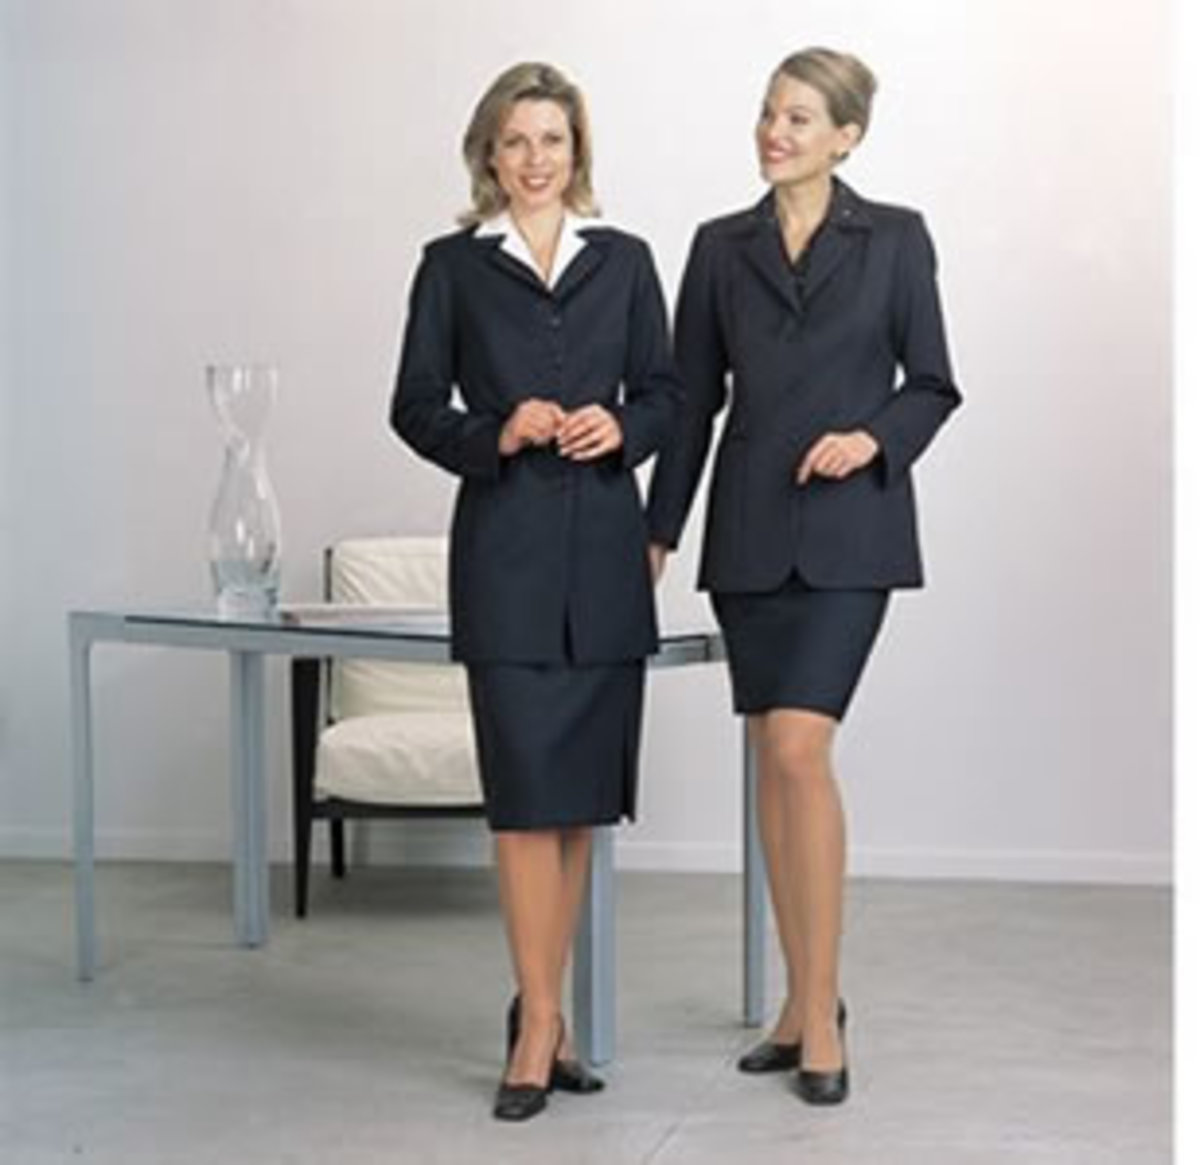 Work Wear: Office Attire for Women